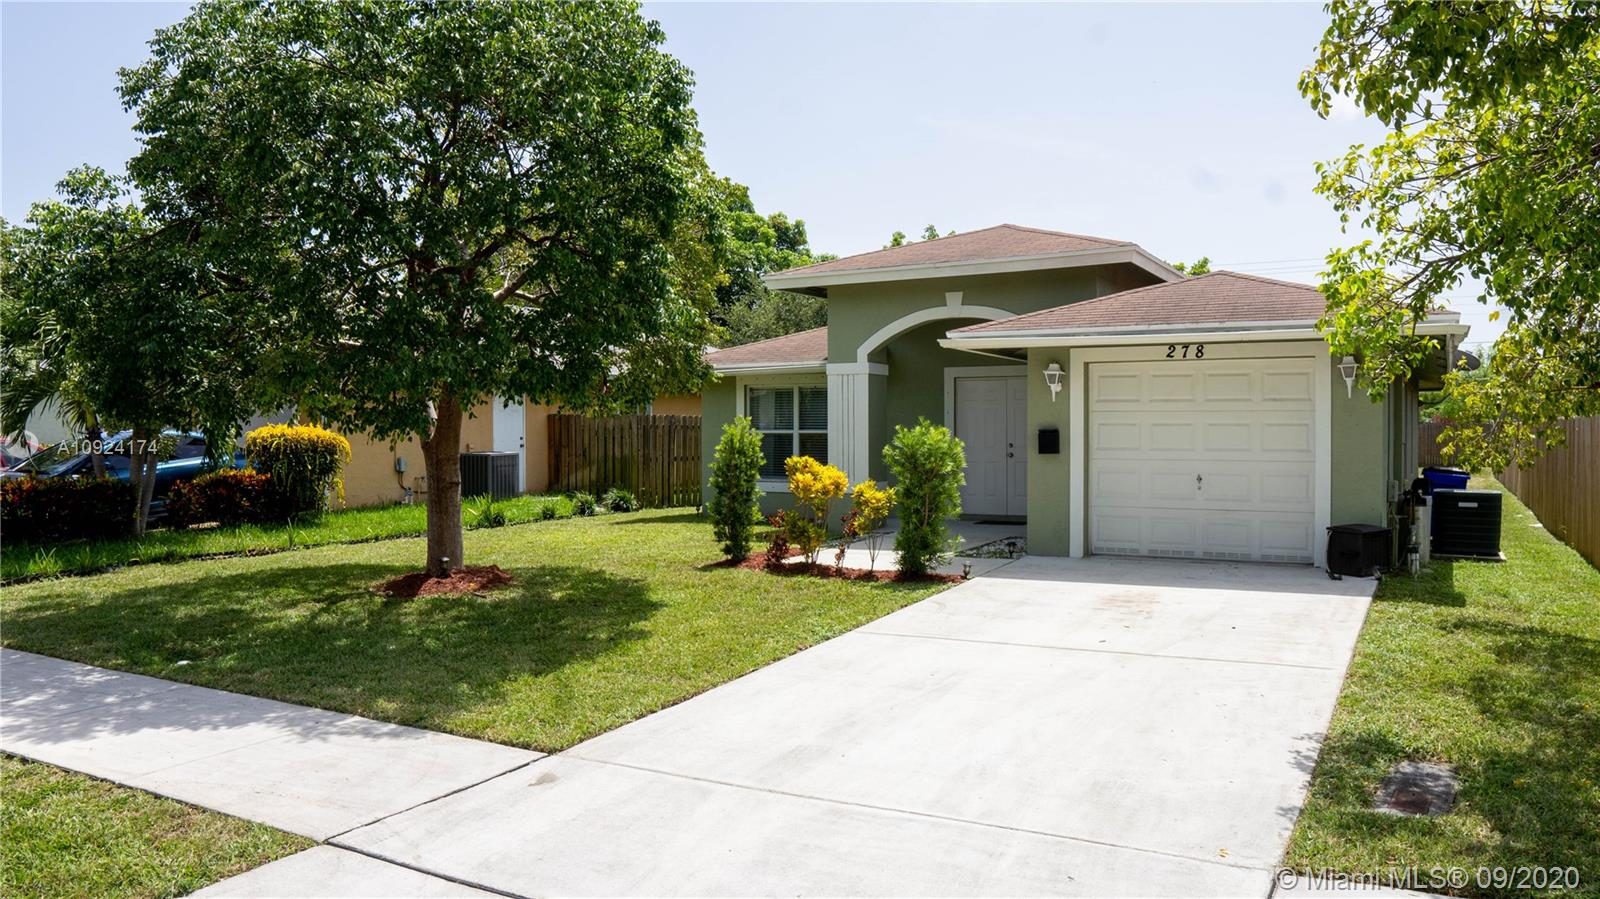 An amazing 3beds 2bath one car garage beauty in Deerfield beach!Well maintained in and out. All specious bedrooms, ceiling fans, new A/C , walk-in clost, hurricaine shutters. No HOA! Will not last.